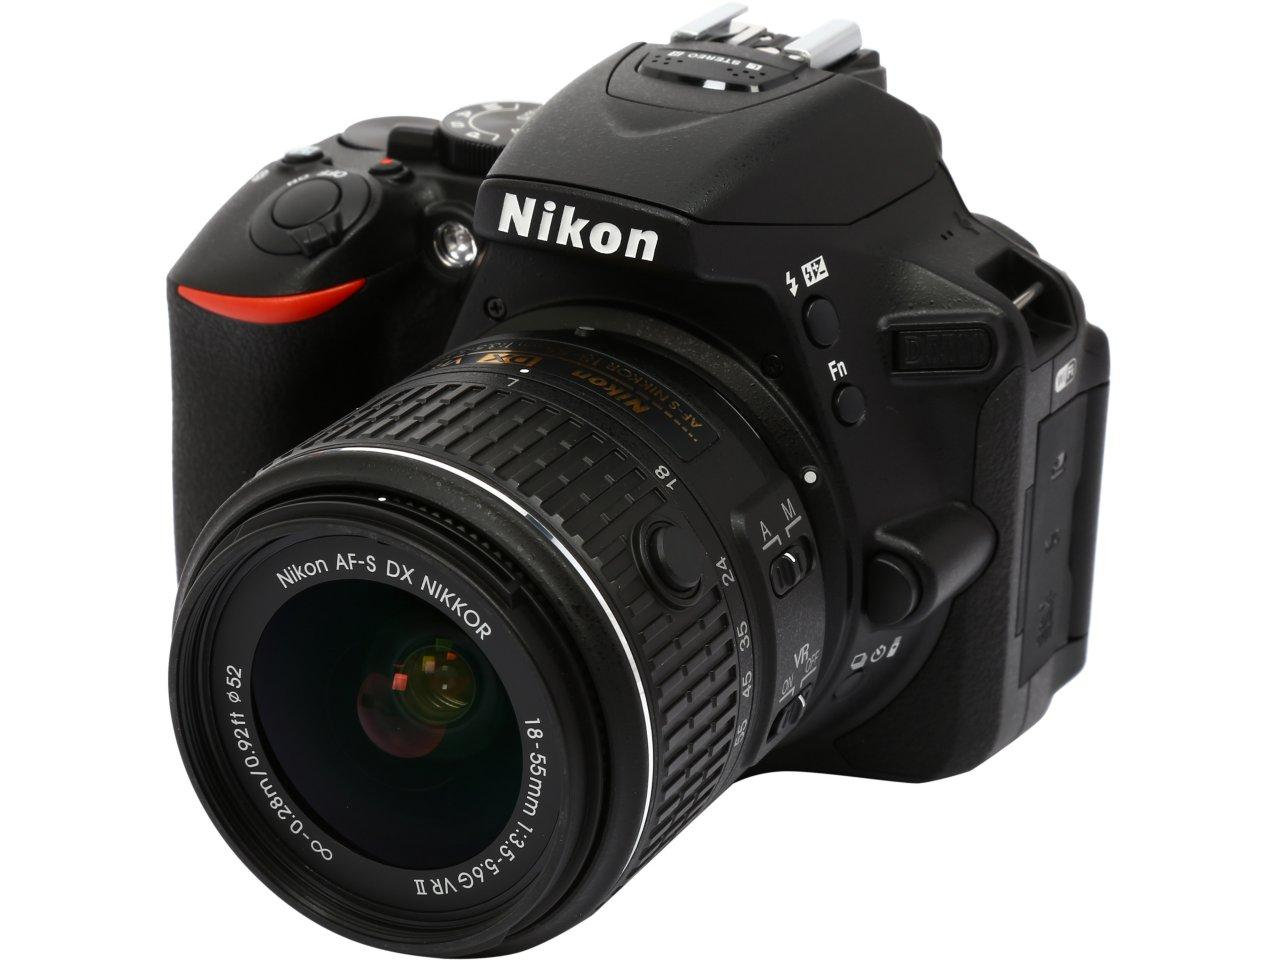 Nikon D5500 Black 24.2MP DSLR Camera with 18-55mm VR II Lens